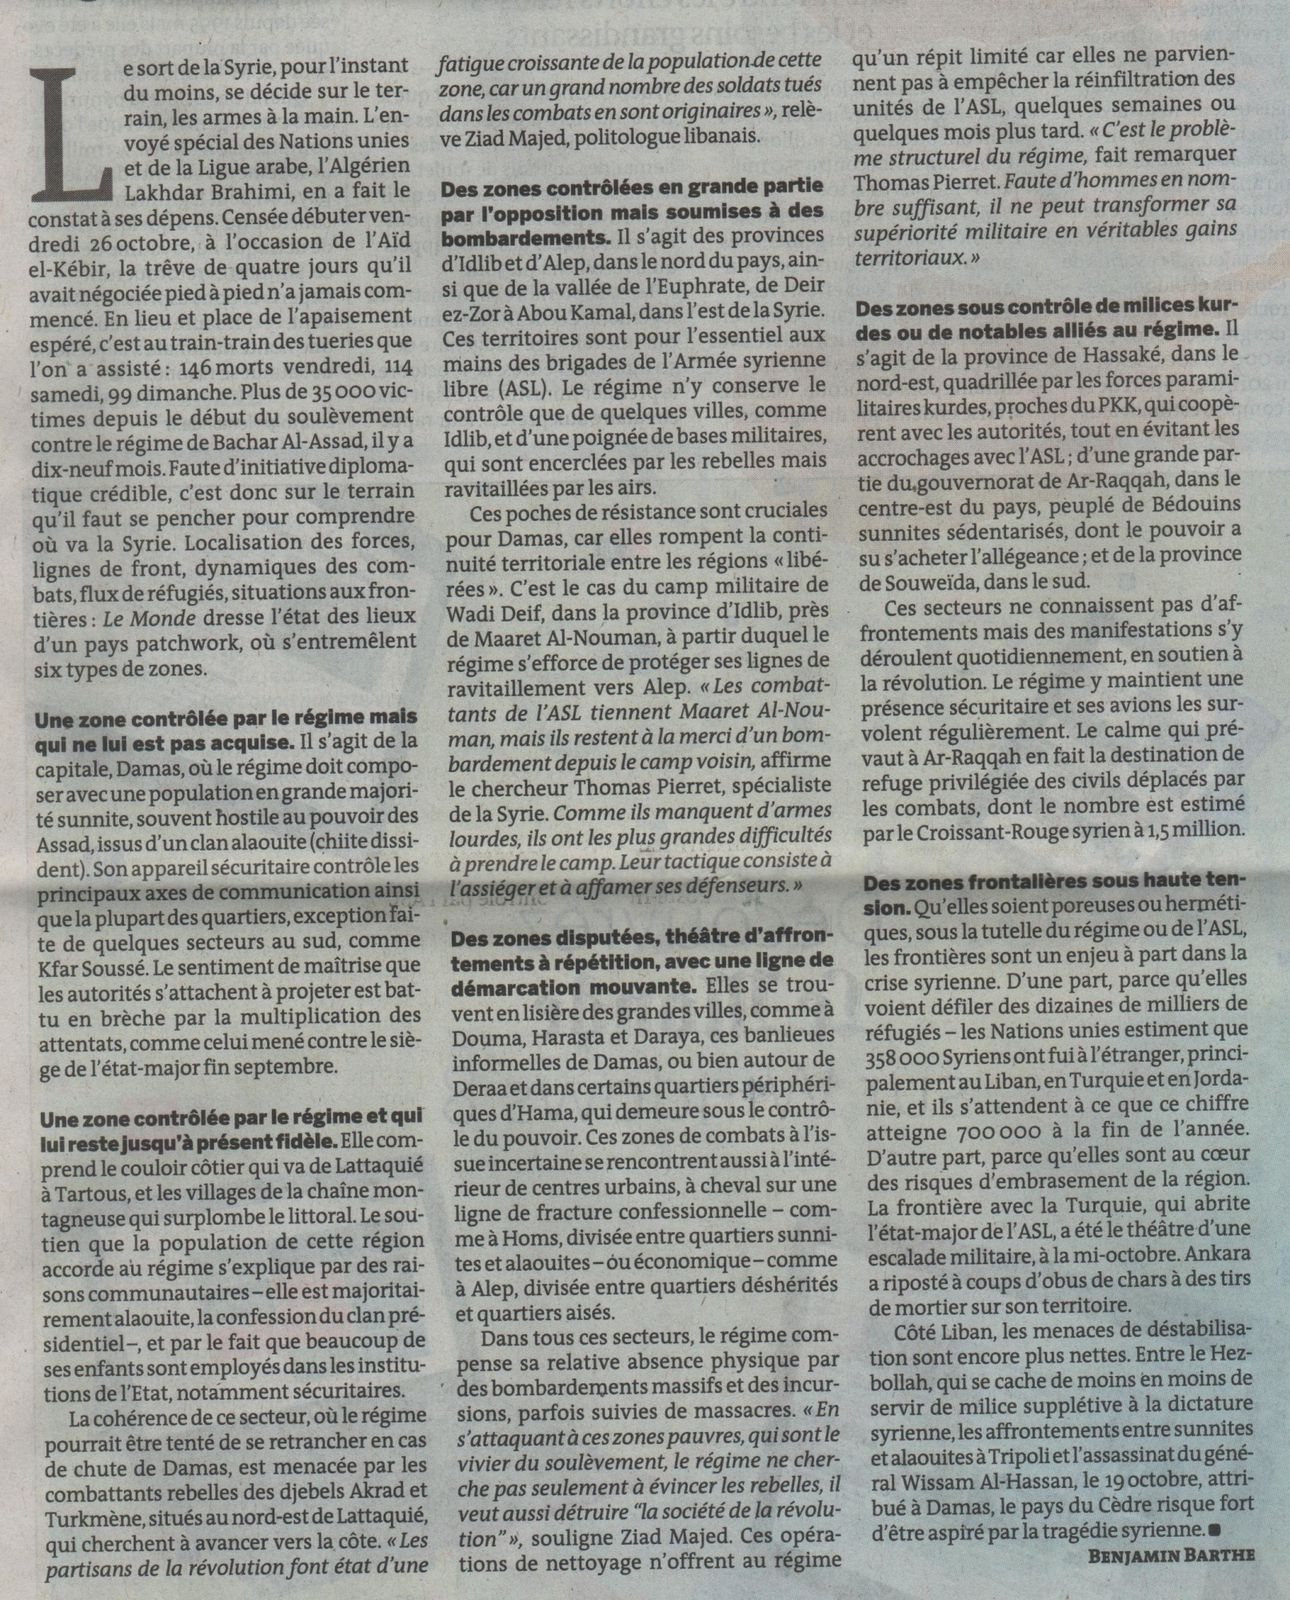 syrie 2 - le monde 31.oct 2012